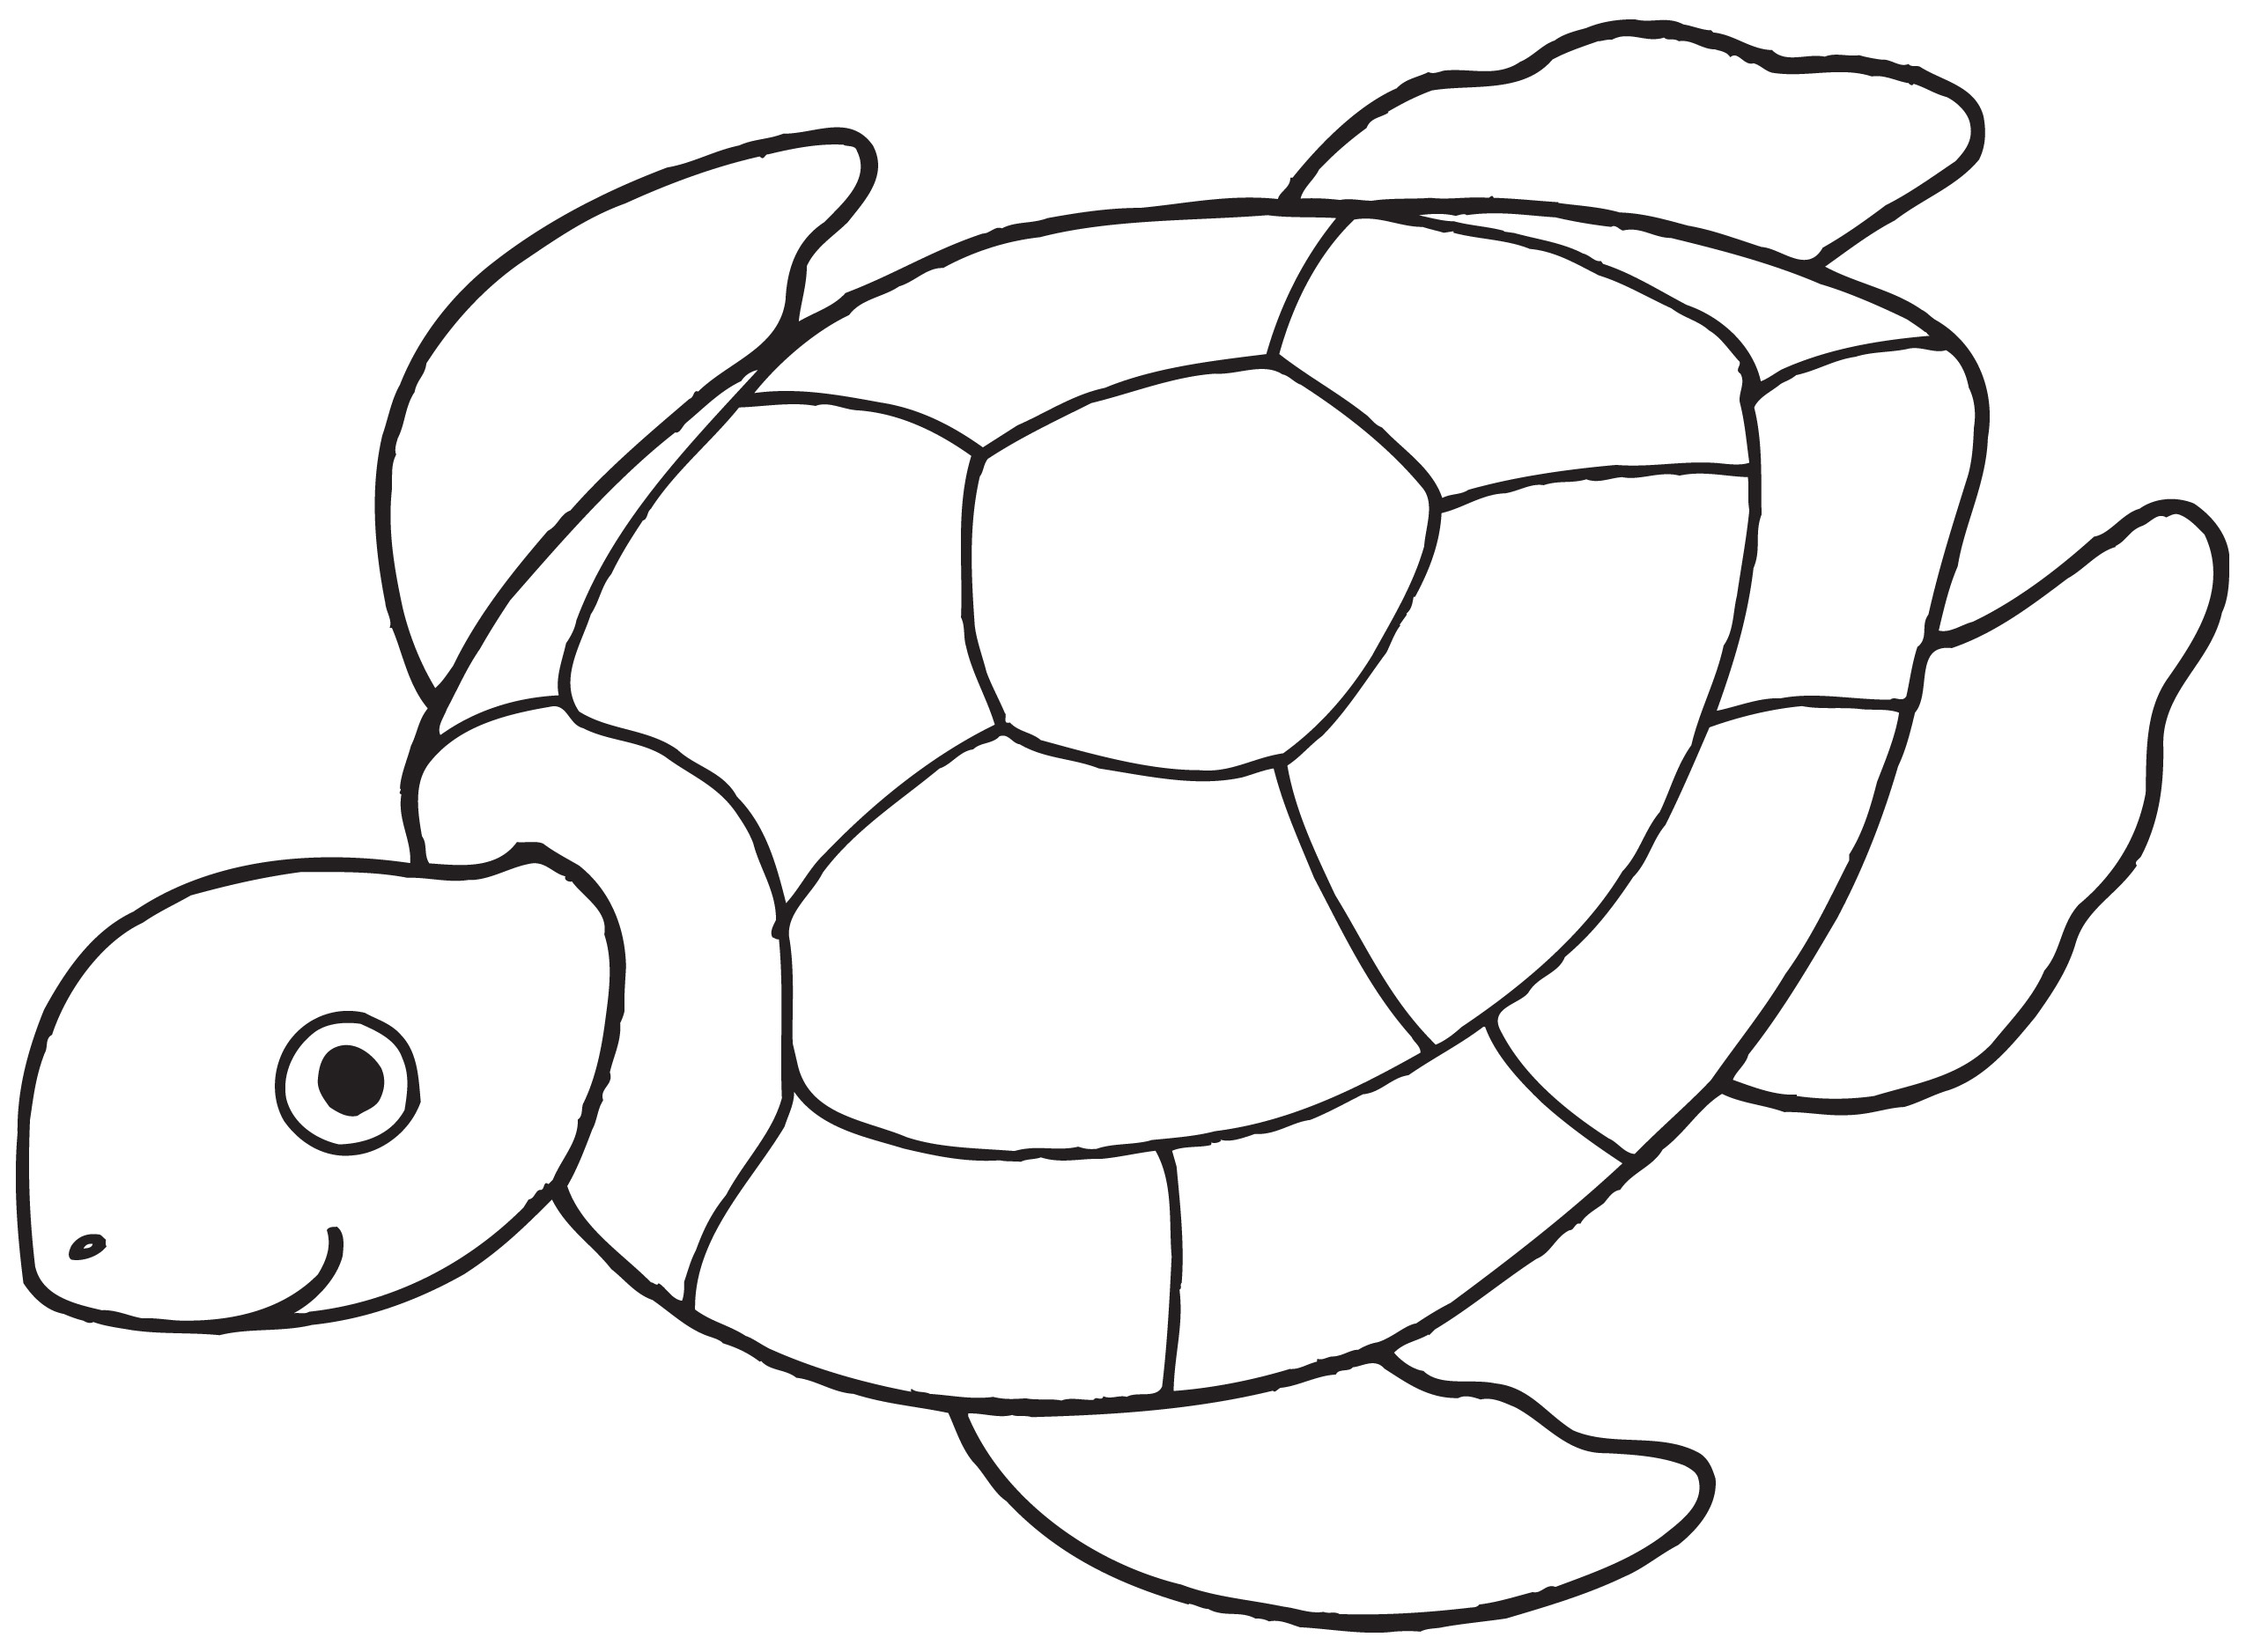 2550x1876 Sea turtle turtle clip art biezumd